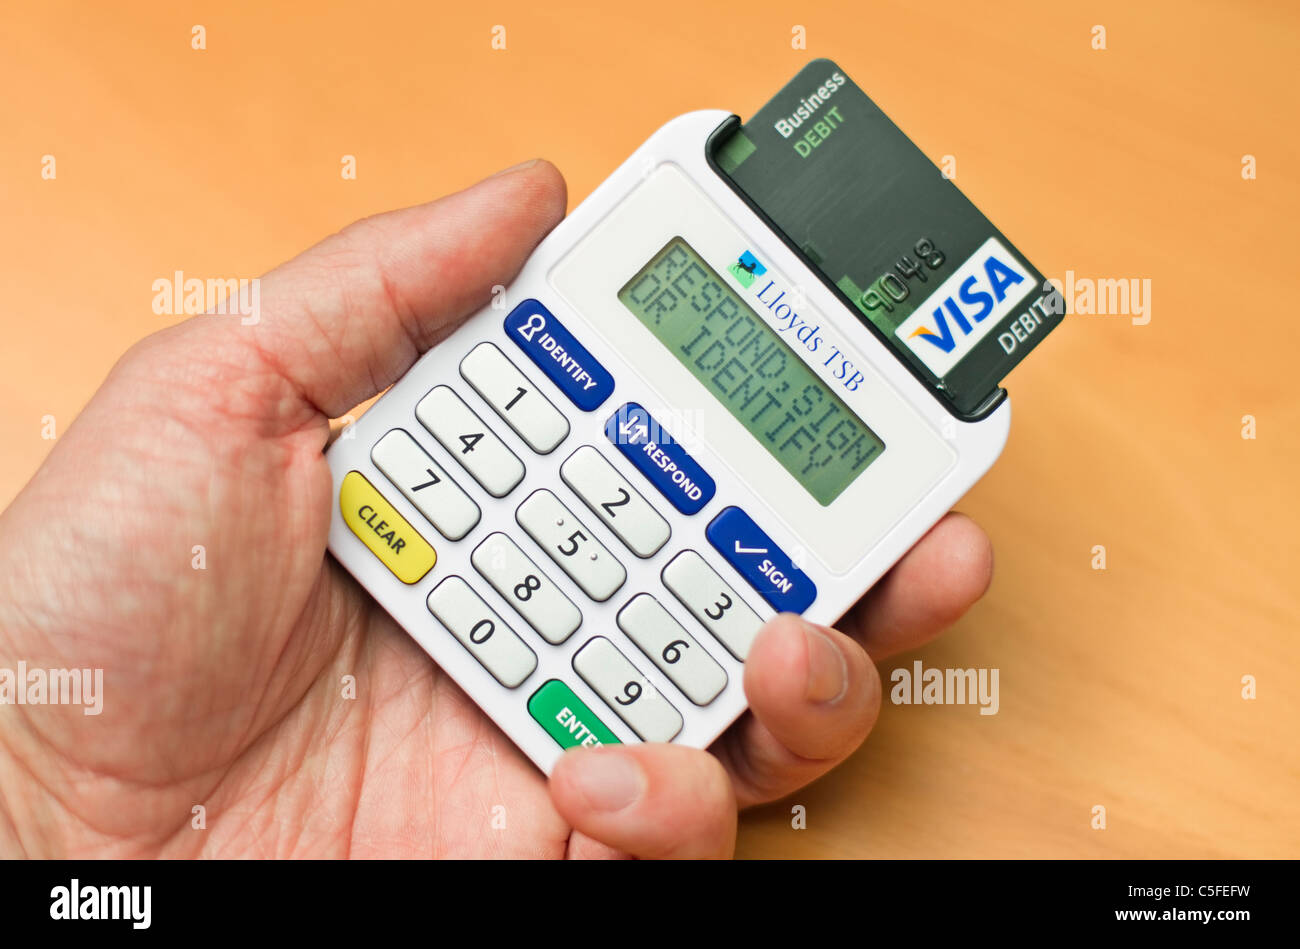 Lloyds tsb bank credit card issued in the uk stock photo royalty picture by james boardman male adult hand using a lloyds tsb bank card reader to access his online banking facilities magicingreecefo Image collections